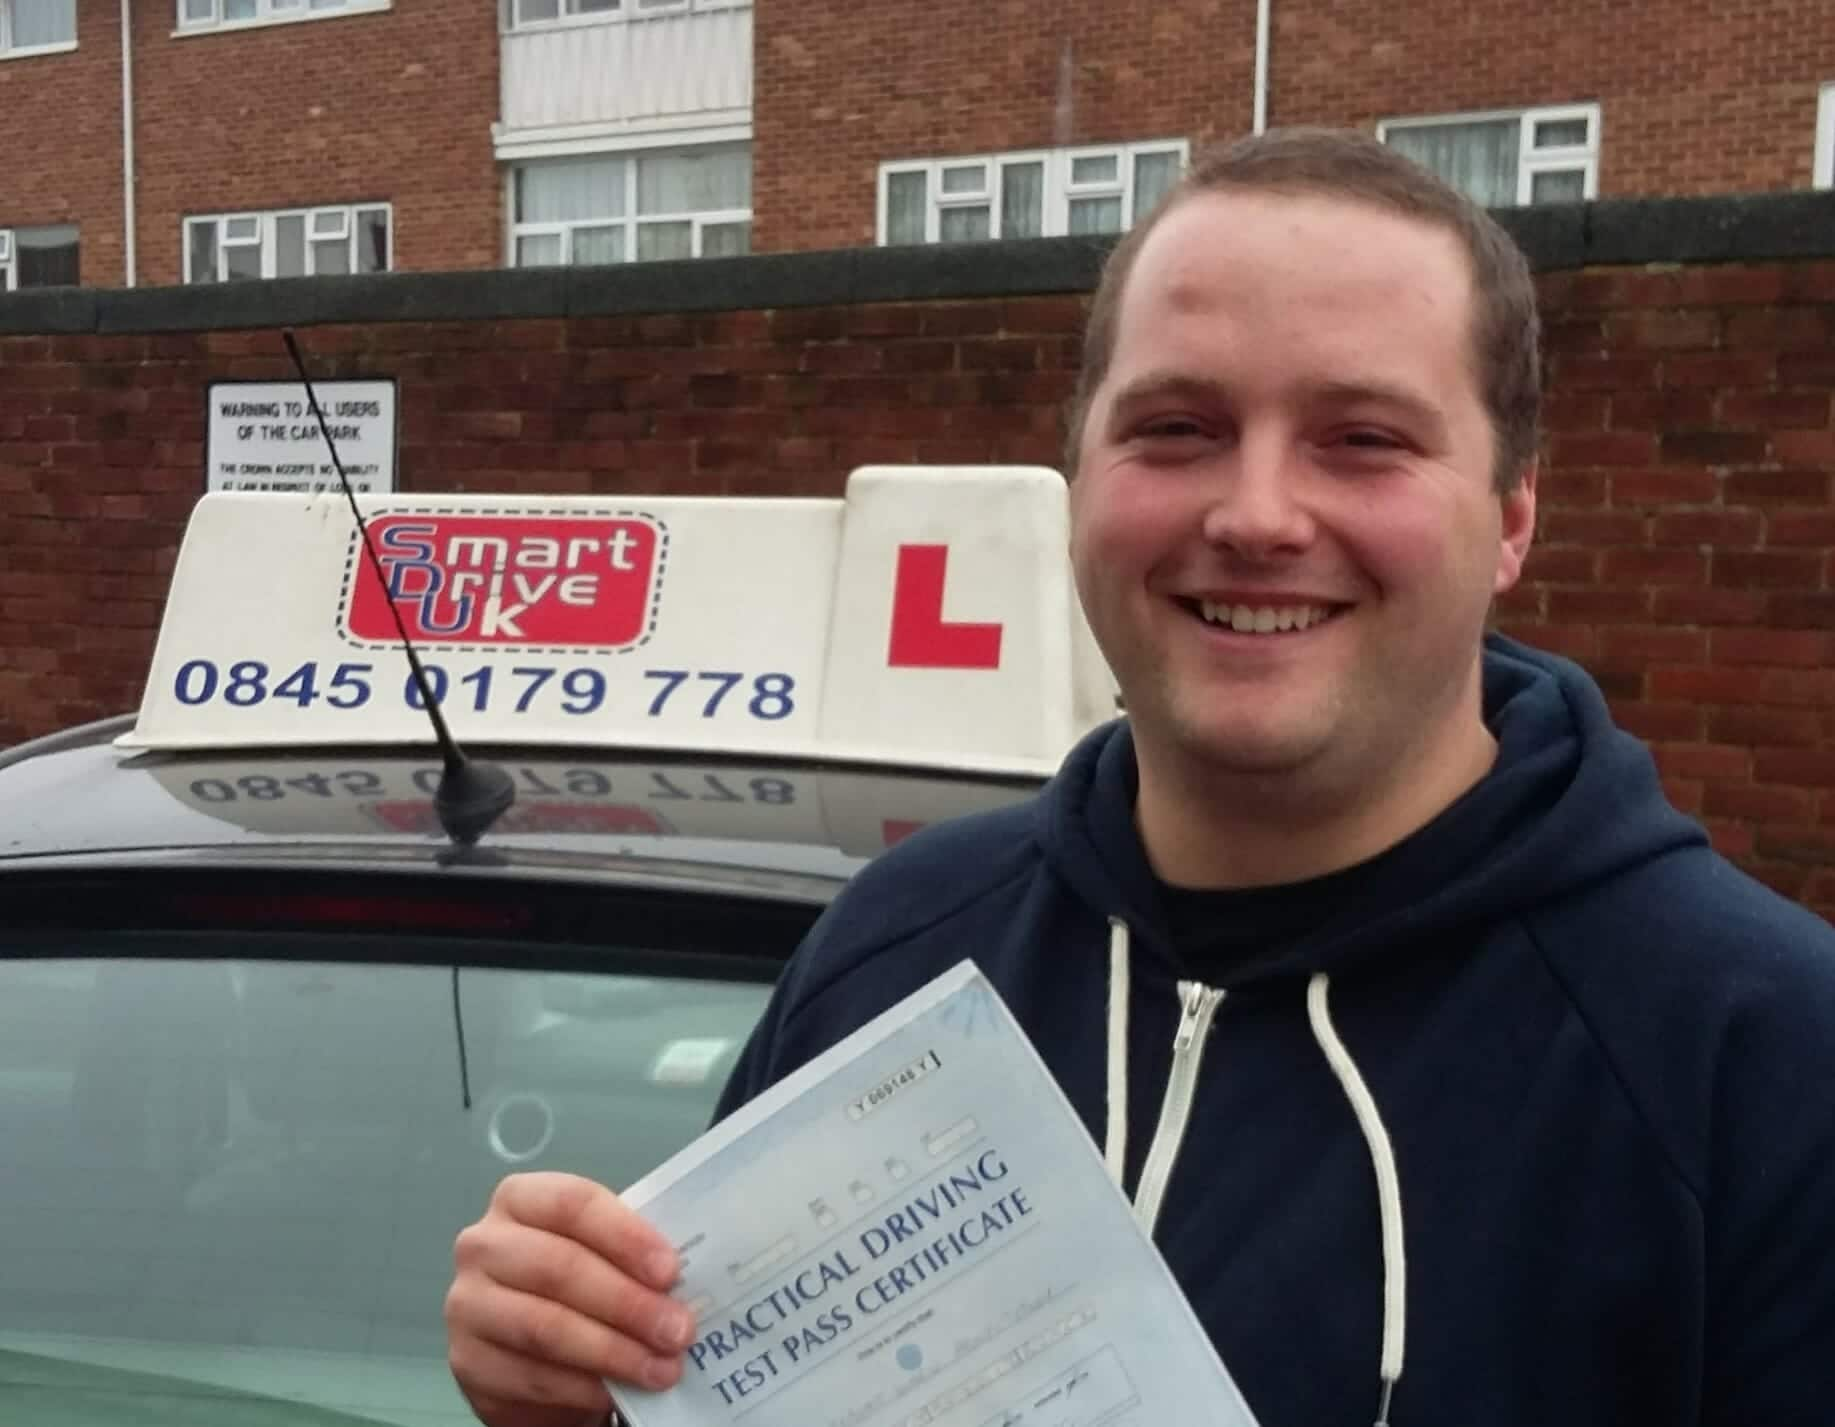 Well done to Rob from Worthing.